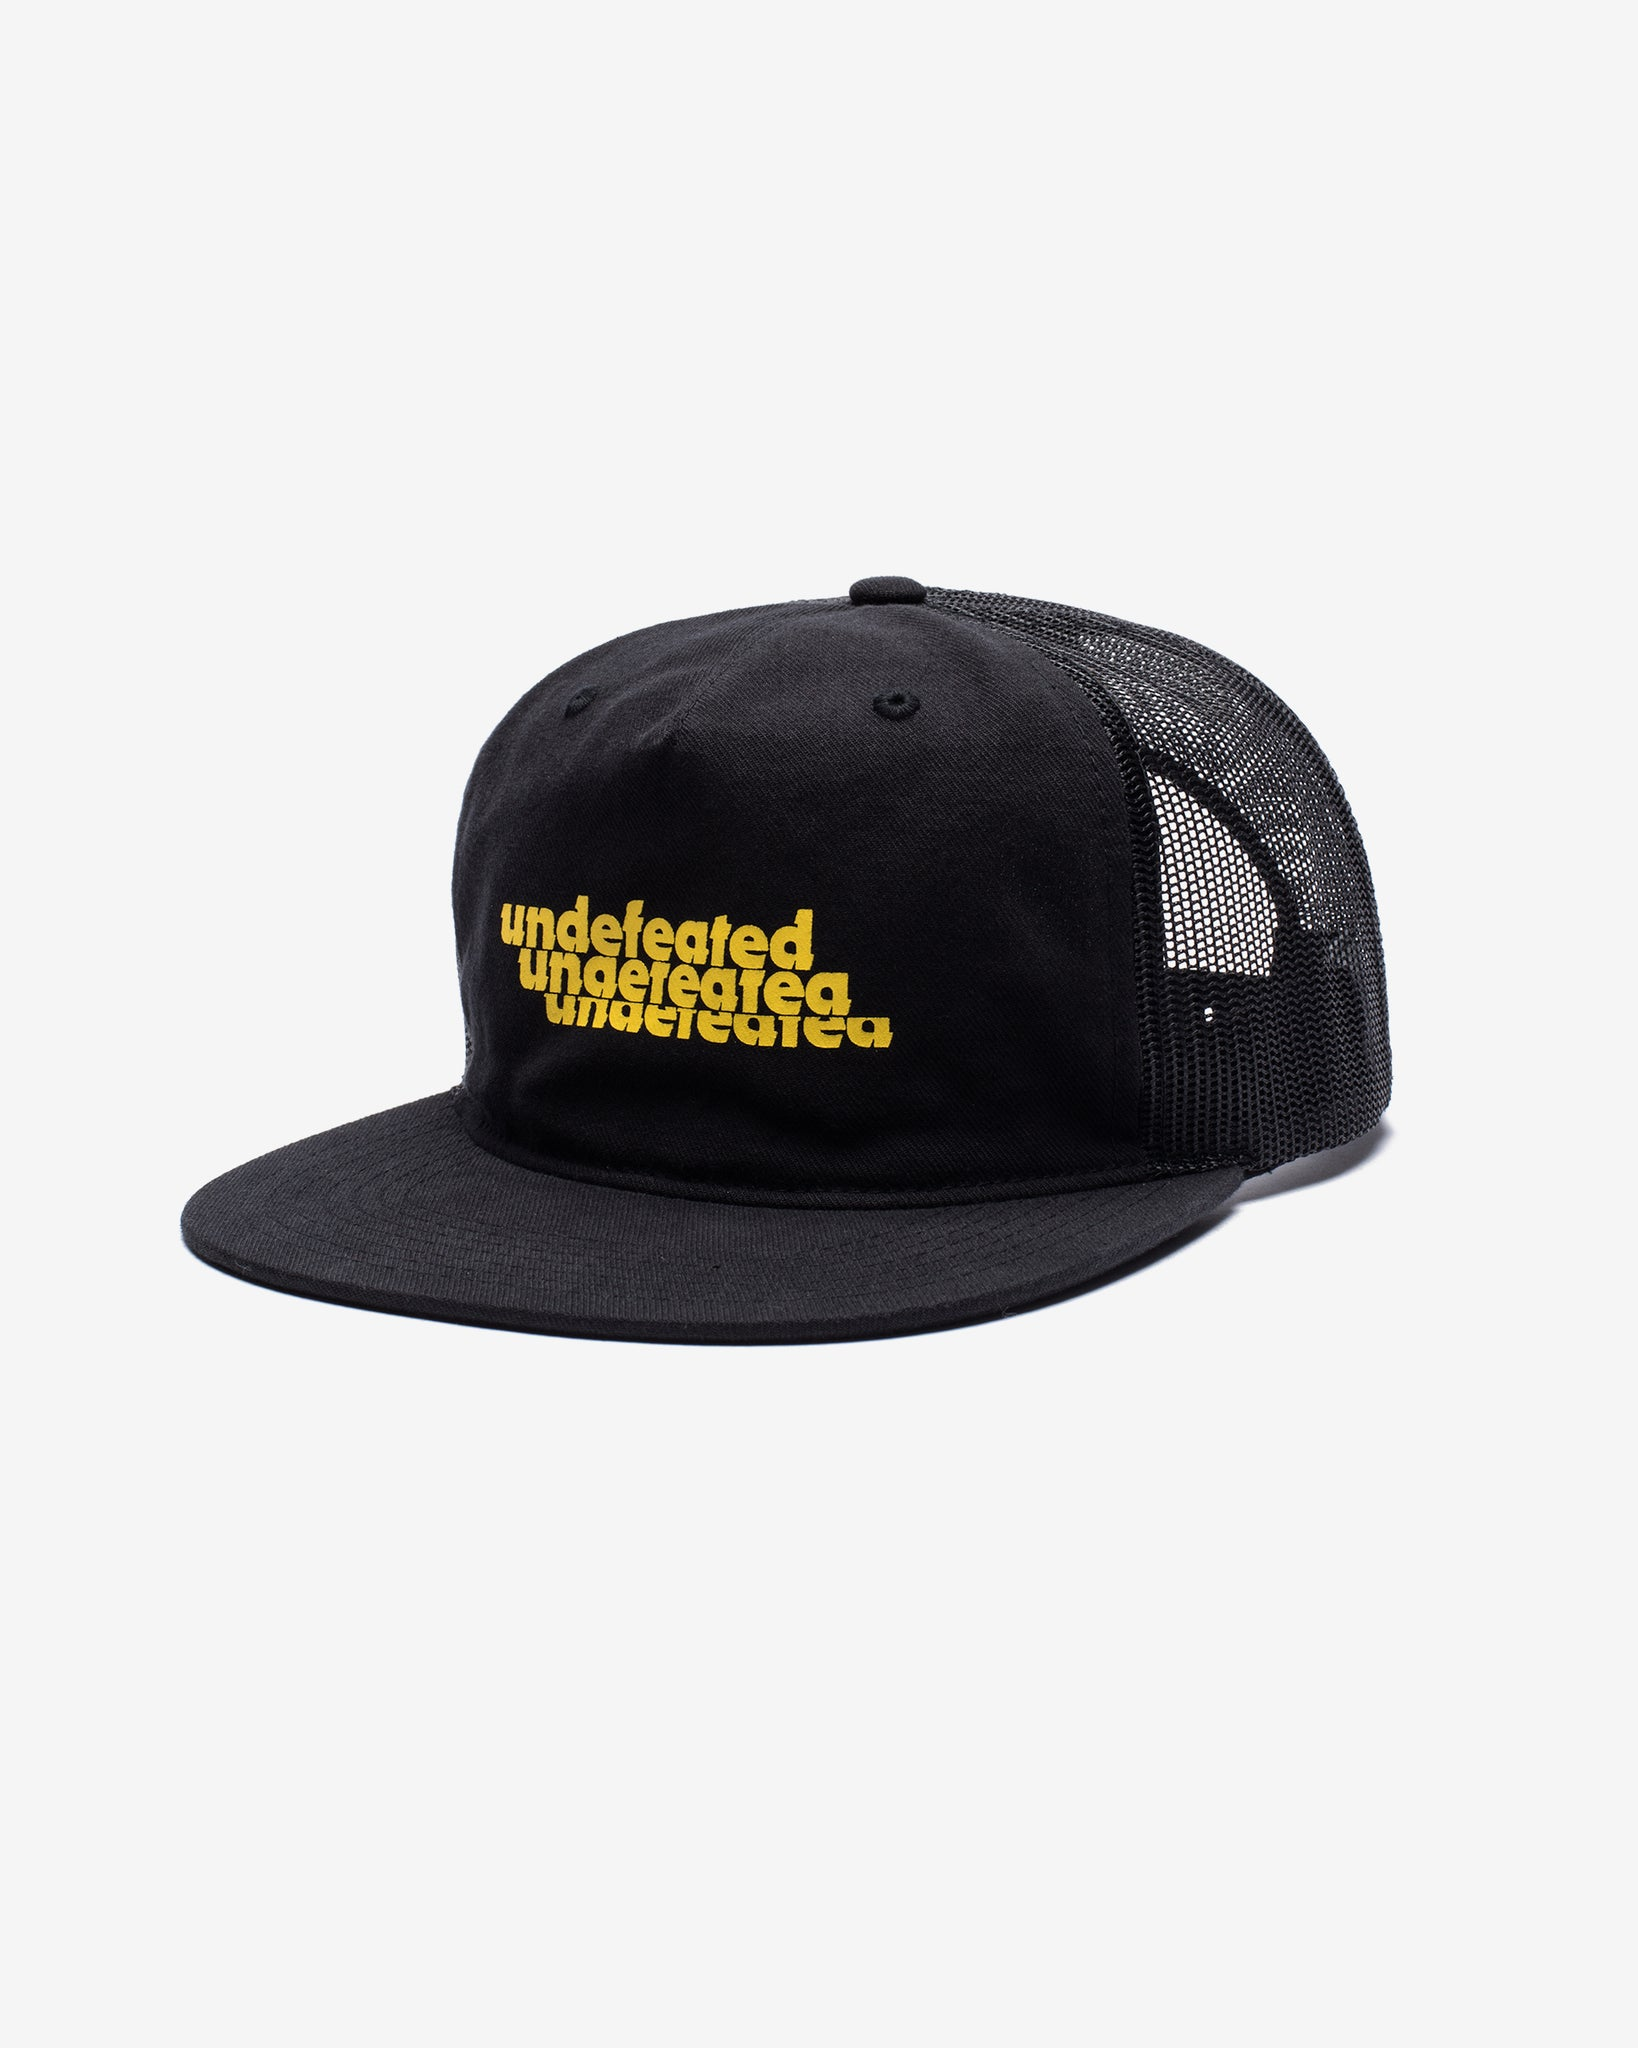 UNDEFEATED STACKING TRUCKER - BLACK